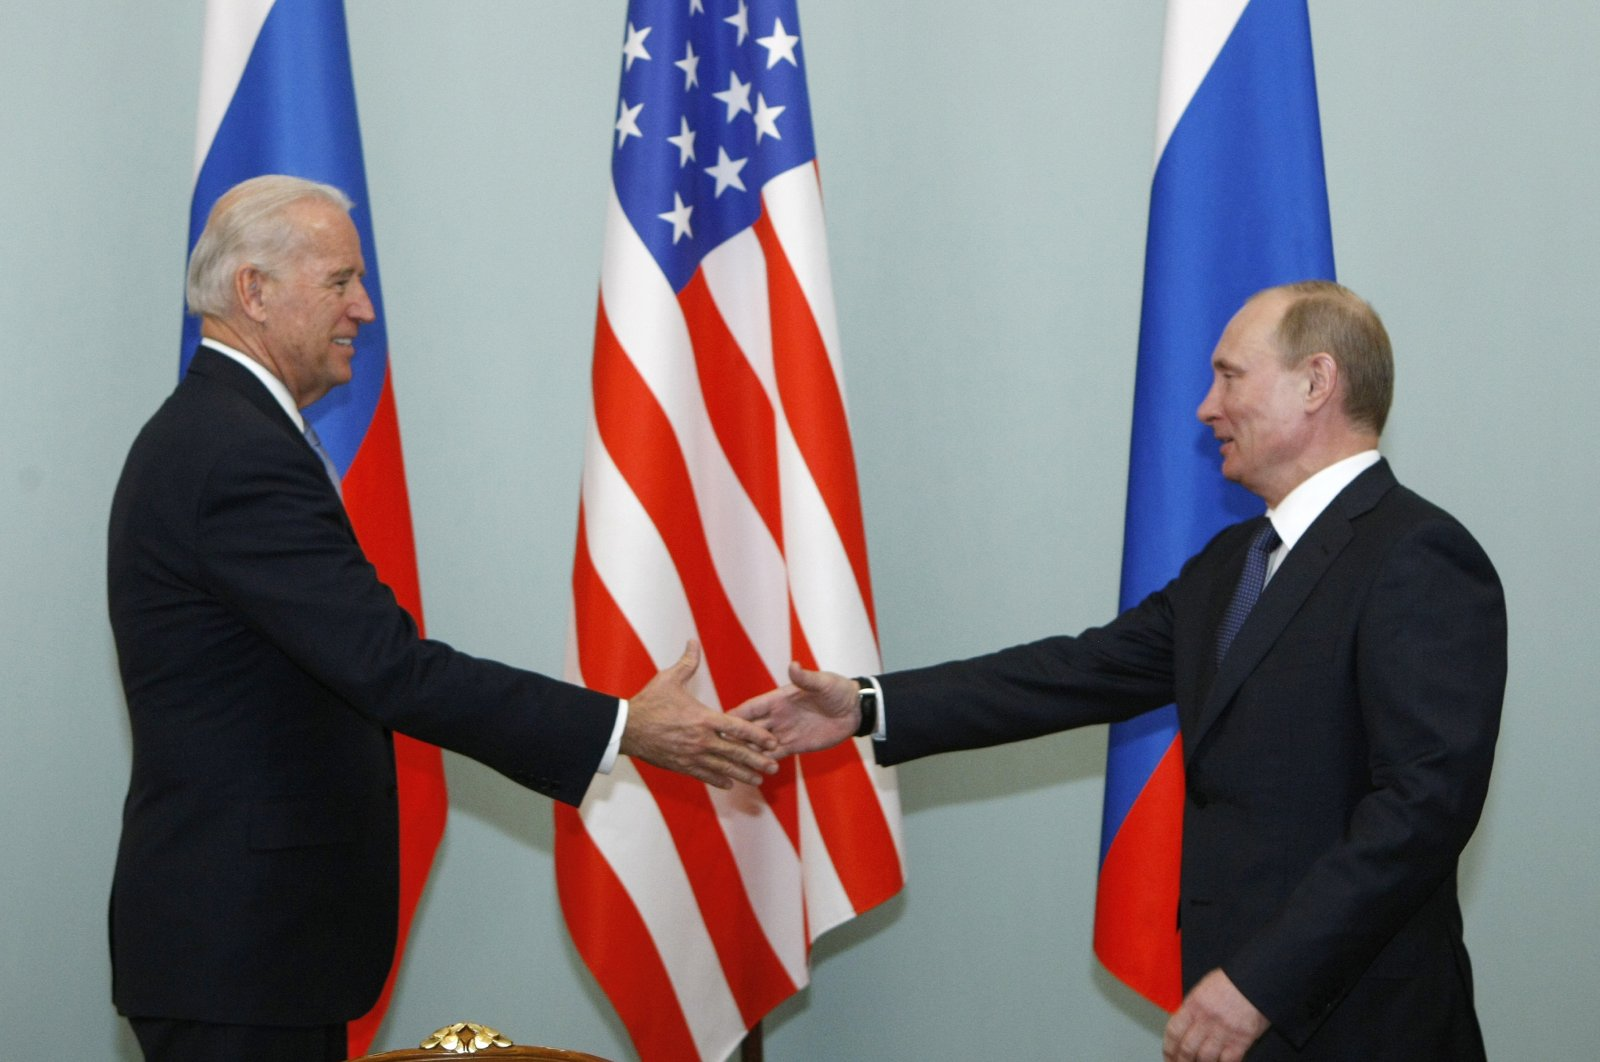 In this file photo, then-U.S. Vice President Joe Biden (L) shakes hands with Russian Prime Minister Vladimir Putin in Moscow, Russia, March 10, 2011. (AP Photo)